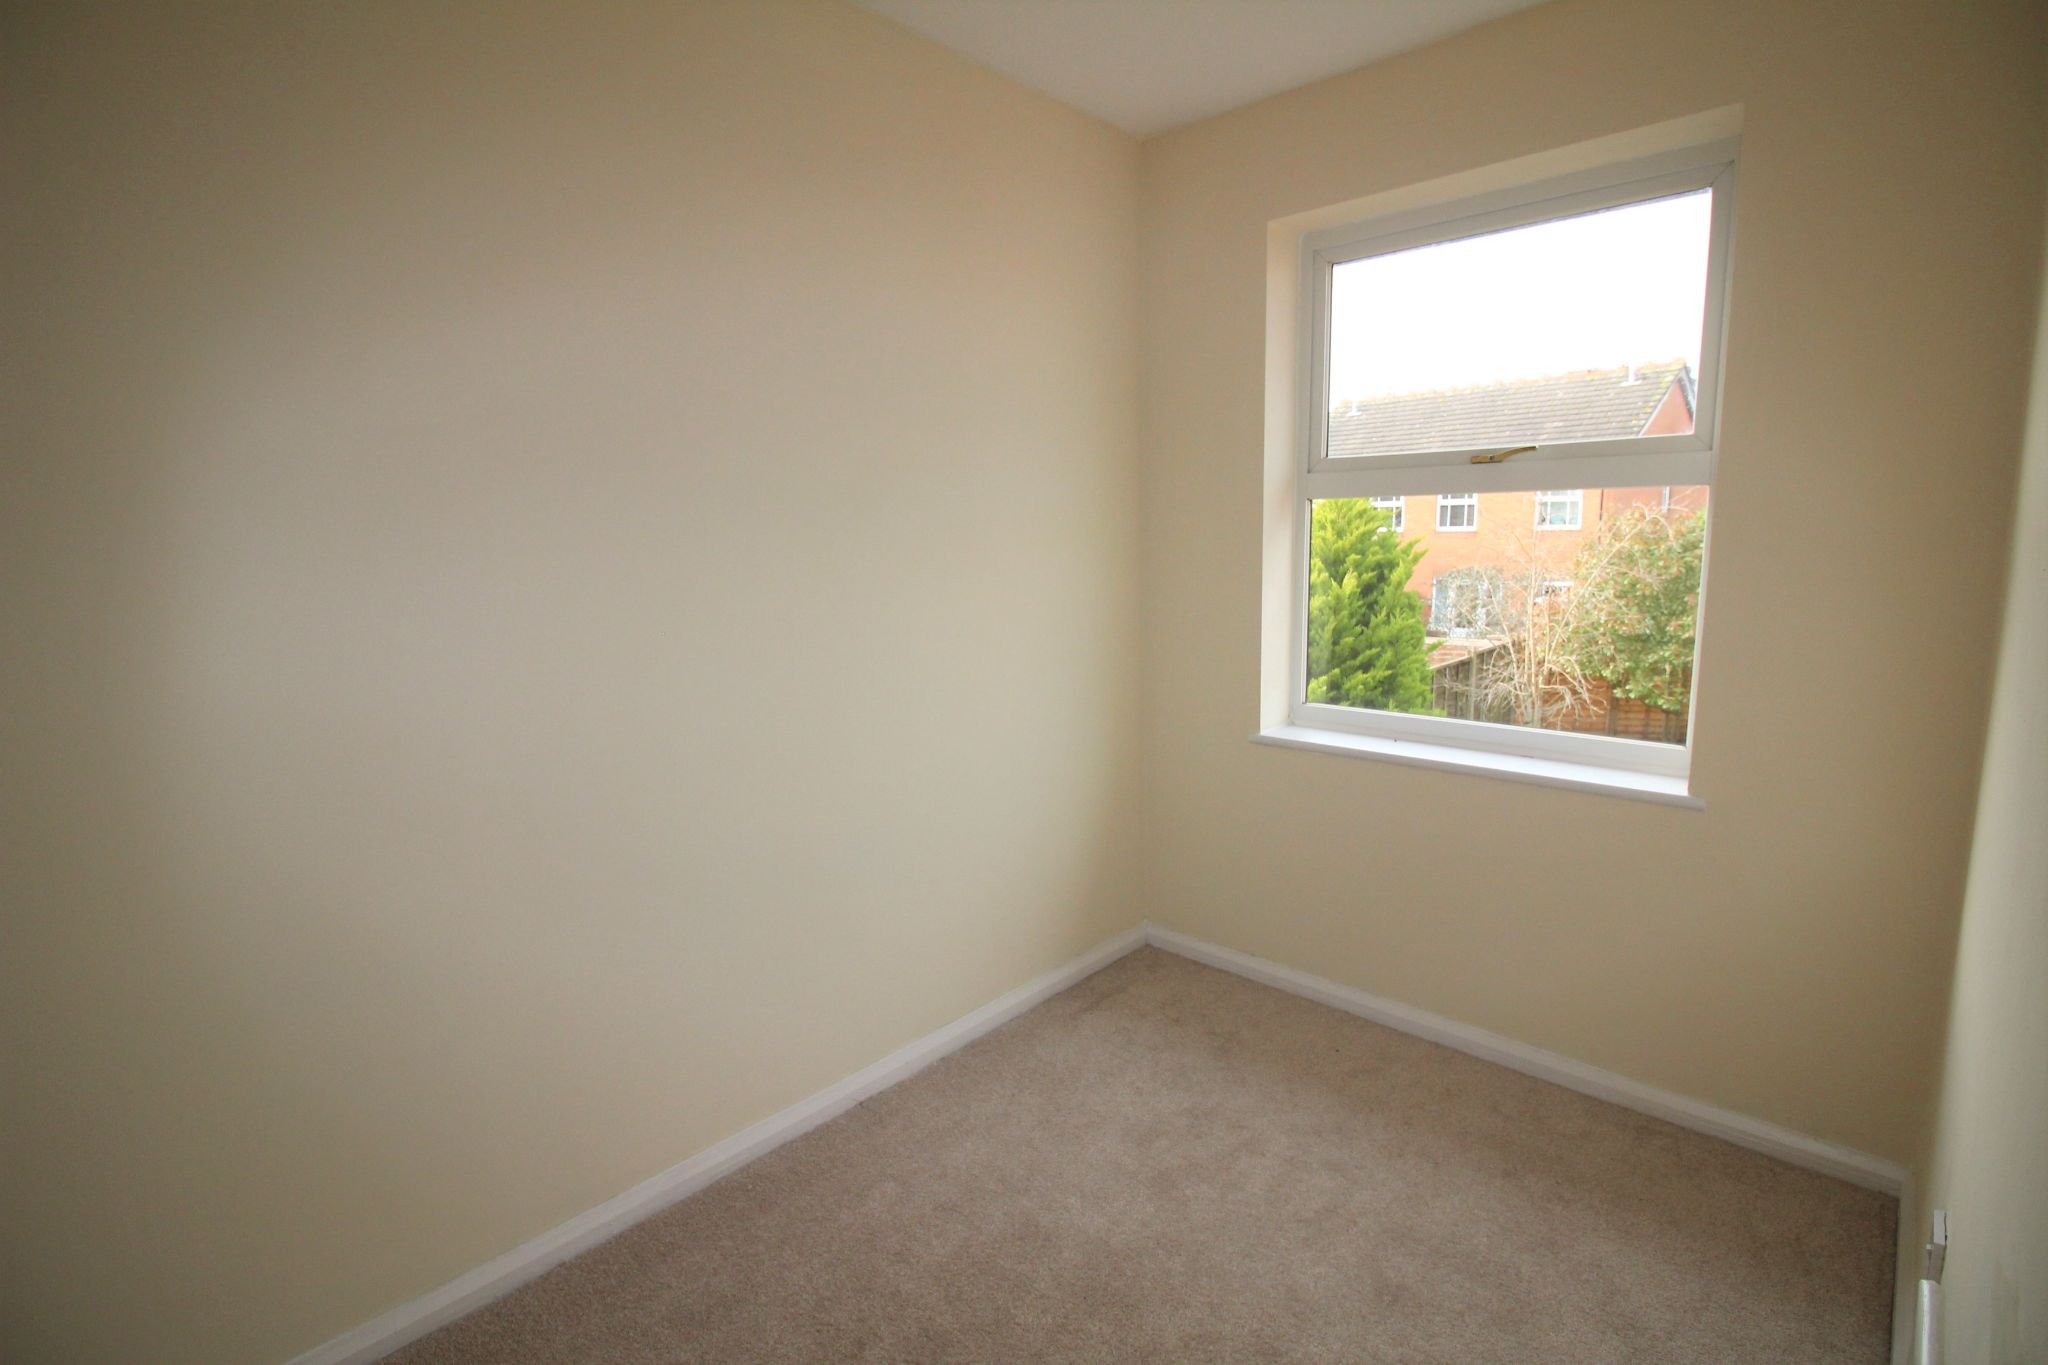 3 bedroom semi-detached house Let Agreed in Solihull - Photograph 13.